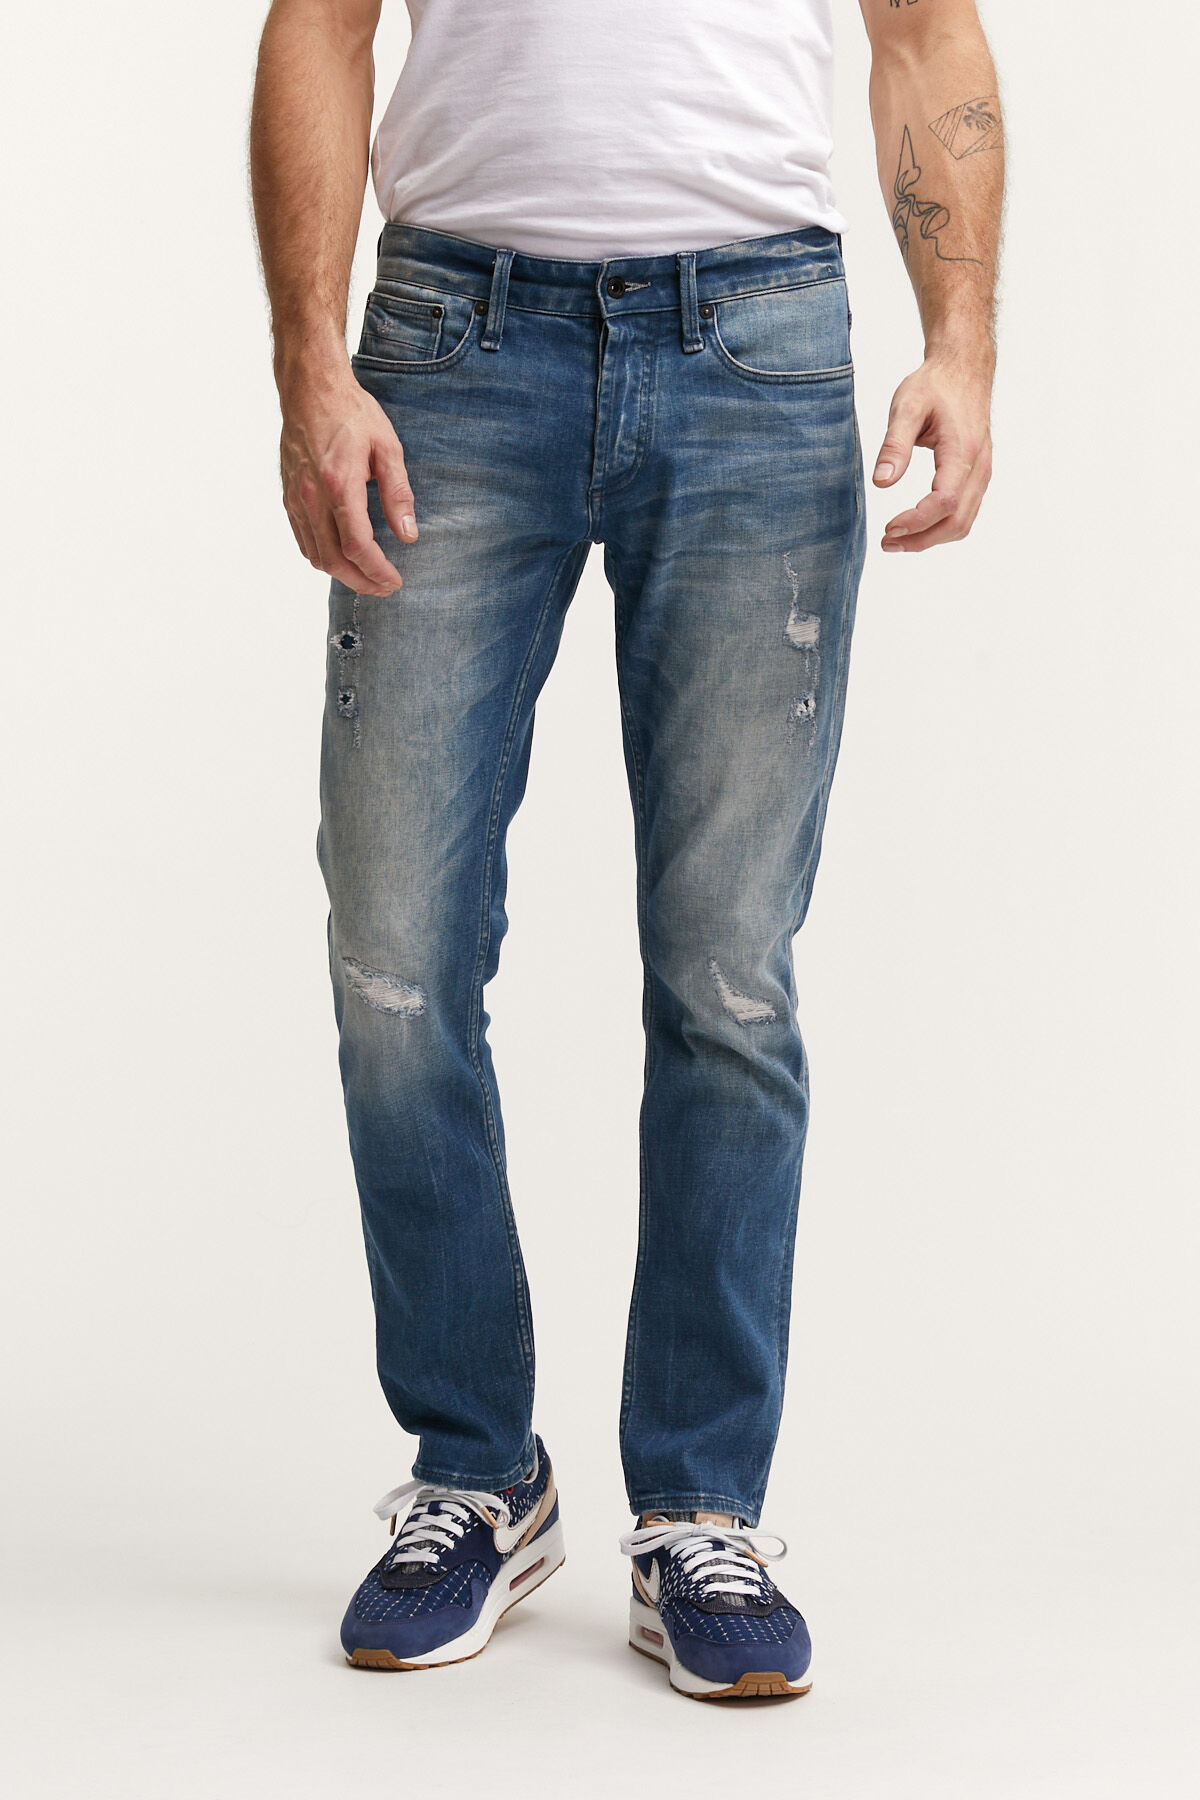 RAZOR BLUE-GREY CAST, RIP & REPAIR DENIM - SLIM FIT